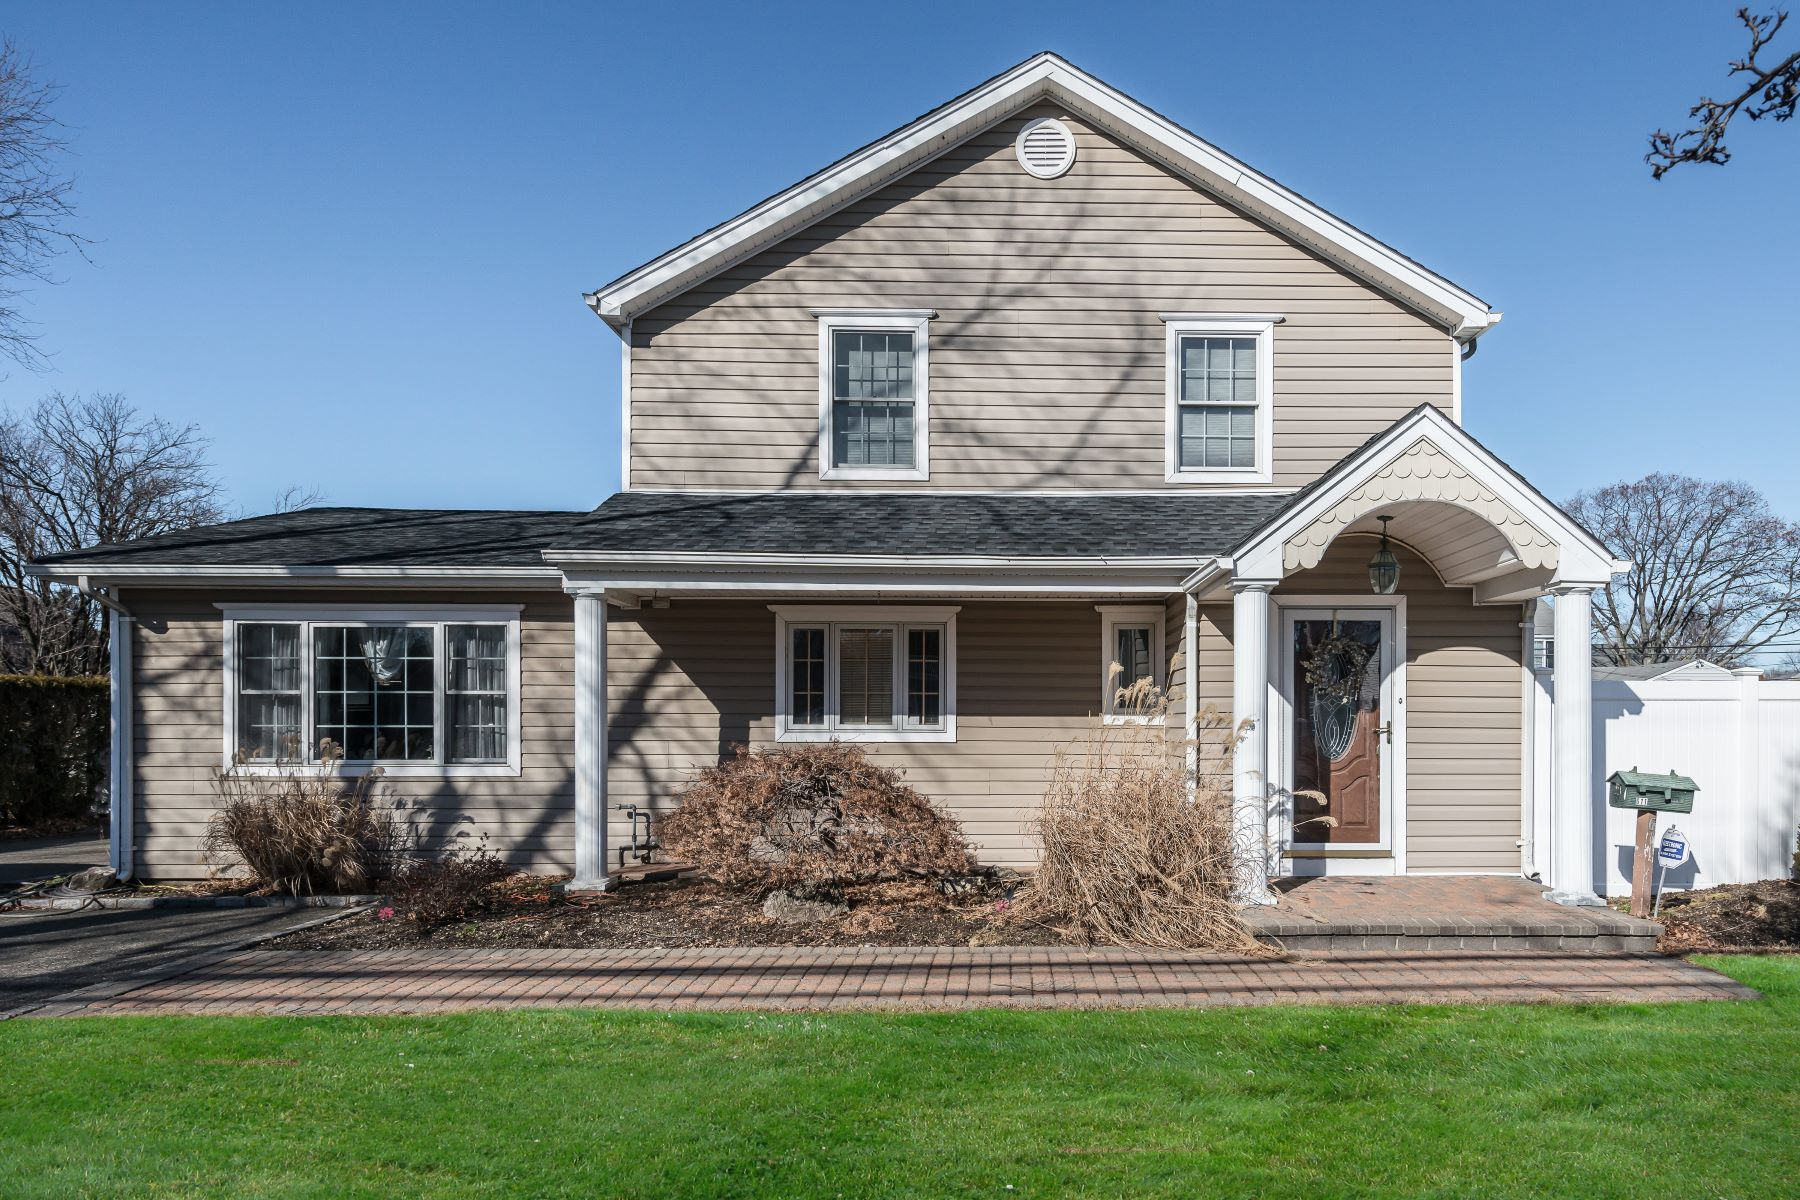 Single Family Home for Sale at 611 Westbury Ave , Westbury, NY 11590 611 Westbury Ave, Westbury, New York, 11590 United States